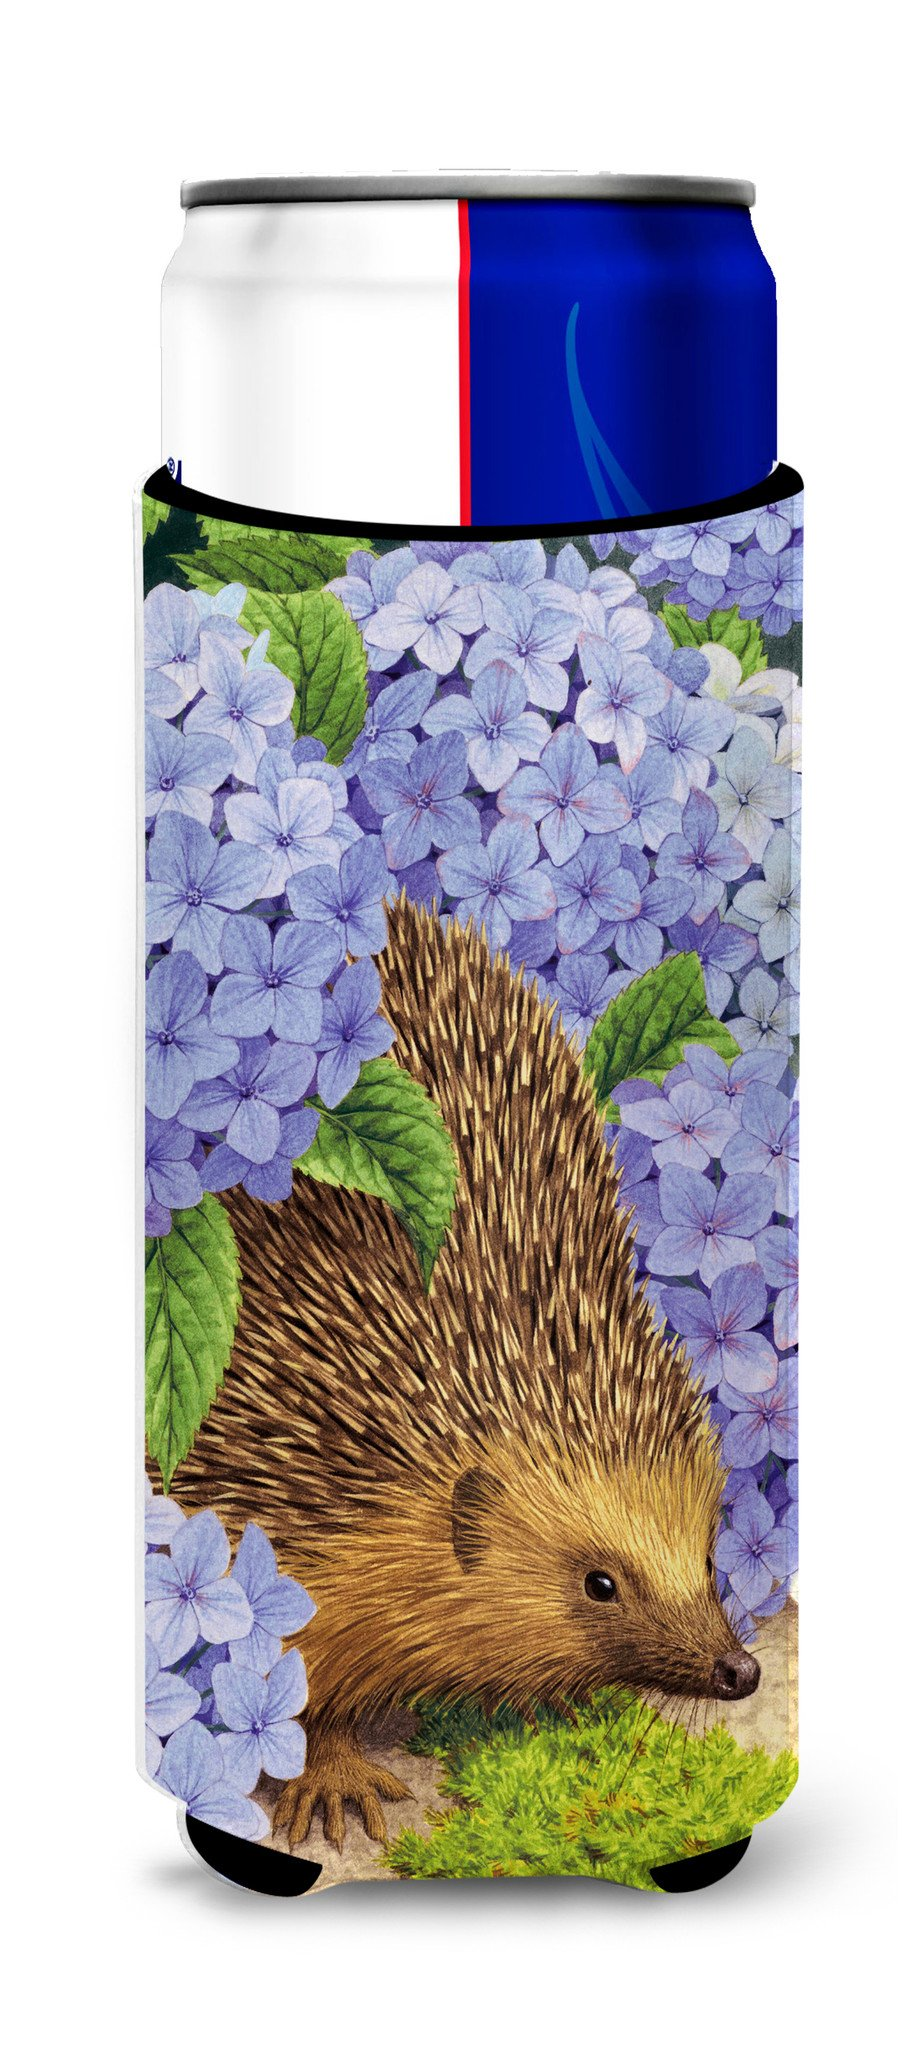 Buy this Hedgehog & Hydrangea Ultra Beverage Insulators for slim cans ASA2001MUK